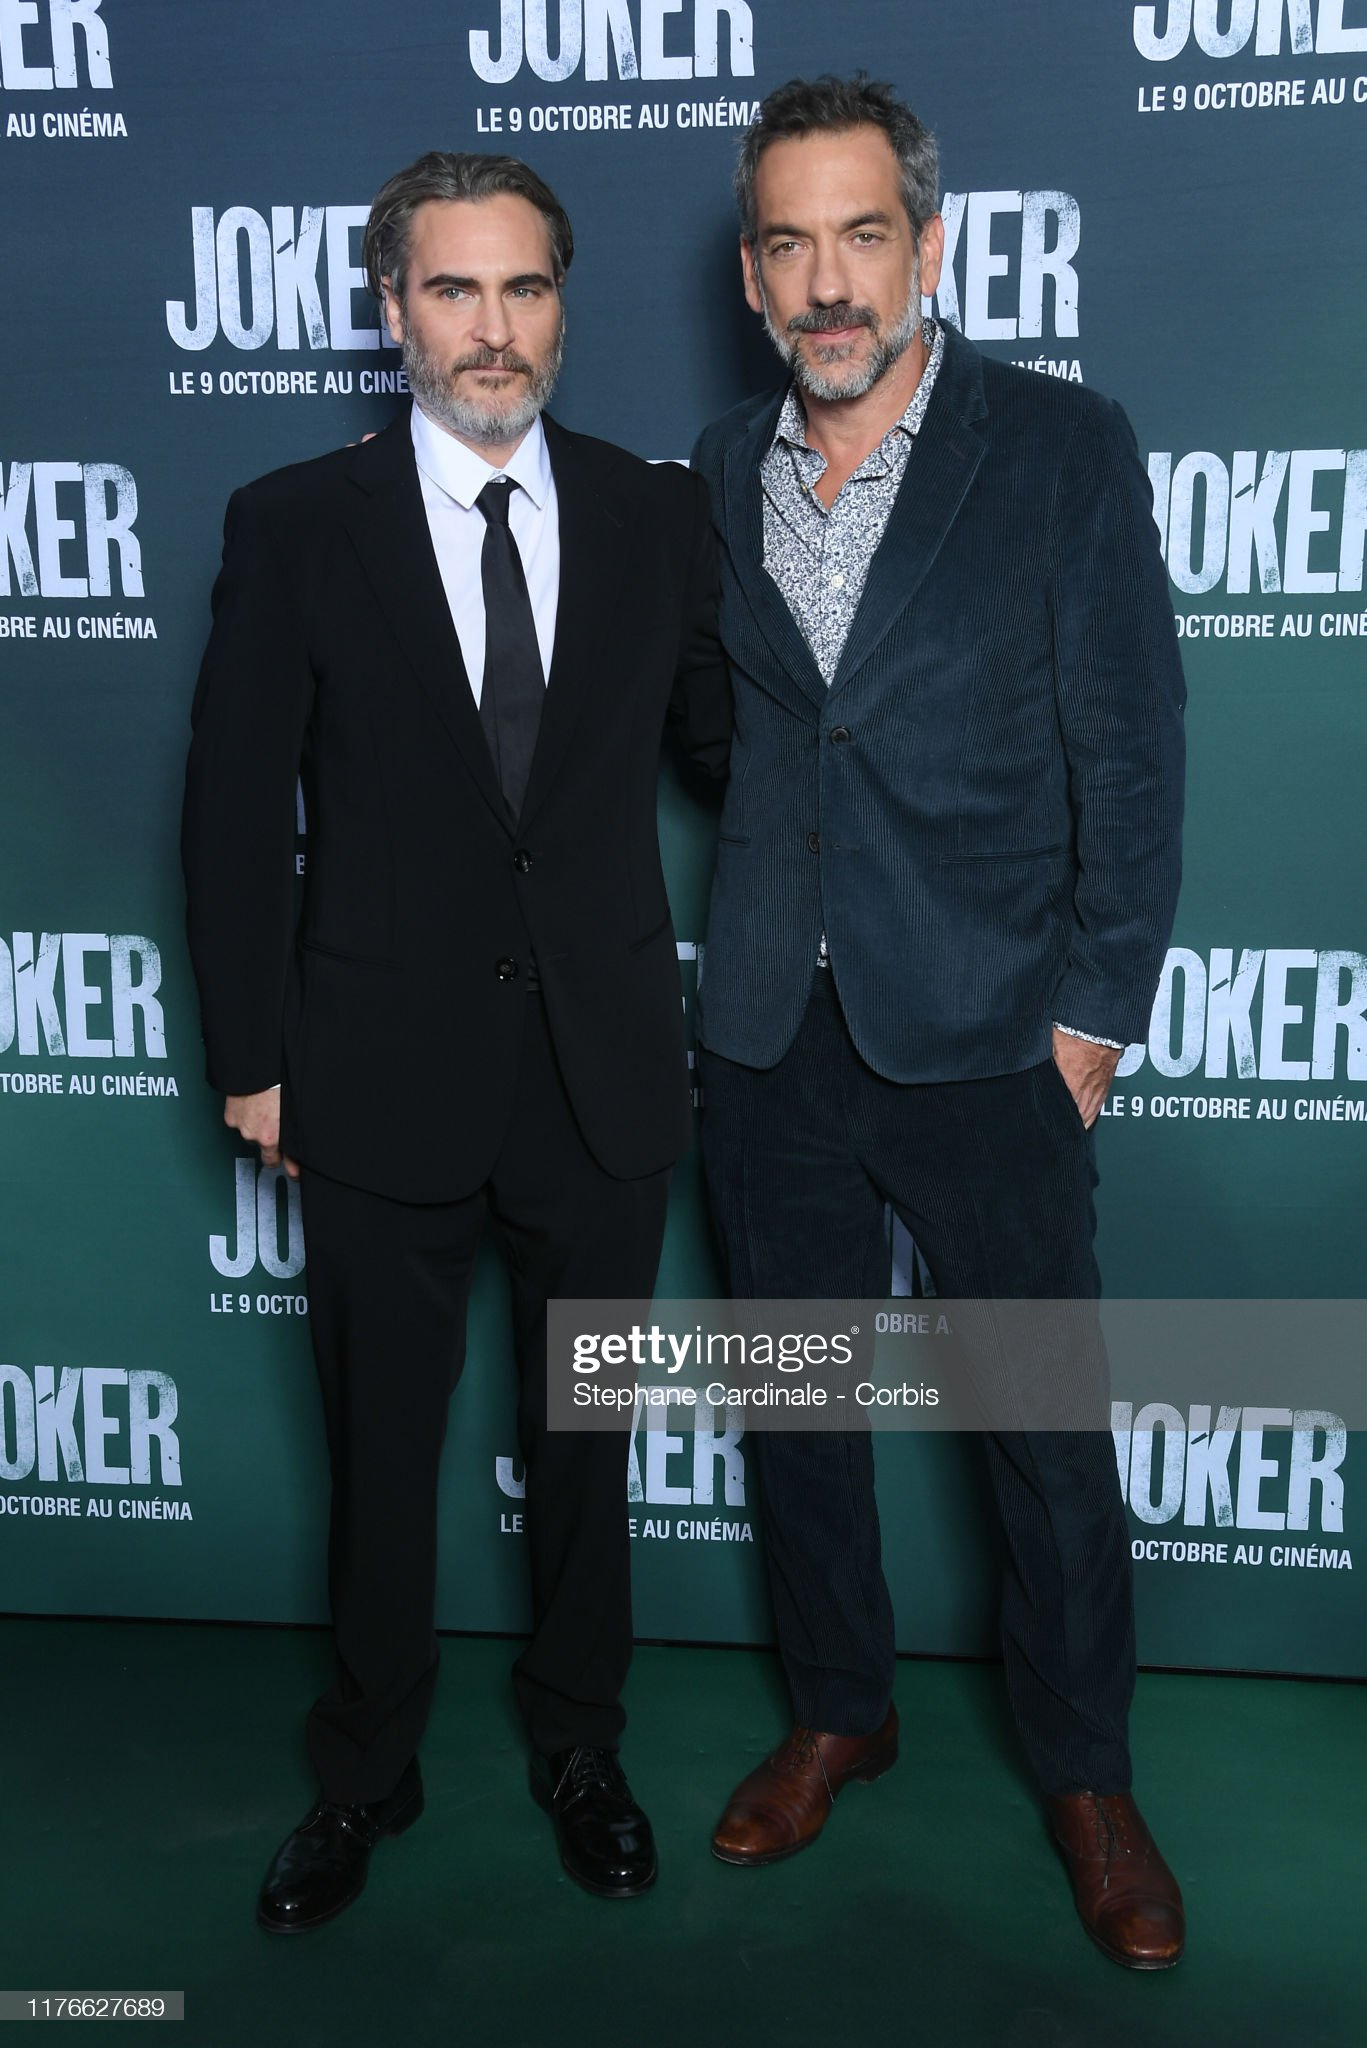 ¿Cuánto mide Joaquin Phoenix? - Altura - Real height Actor-joaquin-phoenix-and-director-todd-phillips-attend-the-joker-at-picture-id1176627689?s=2048x2048